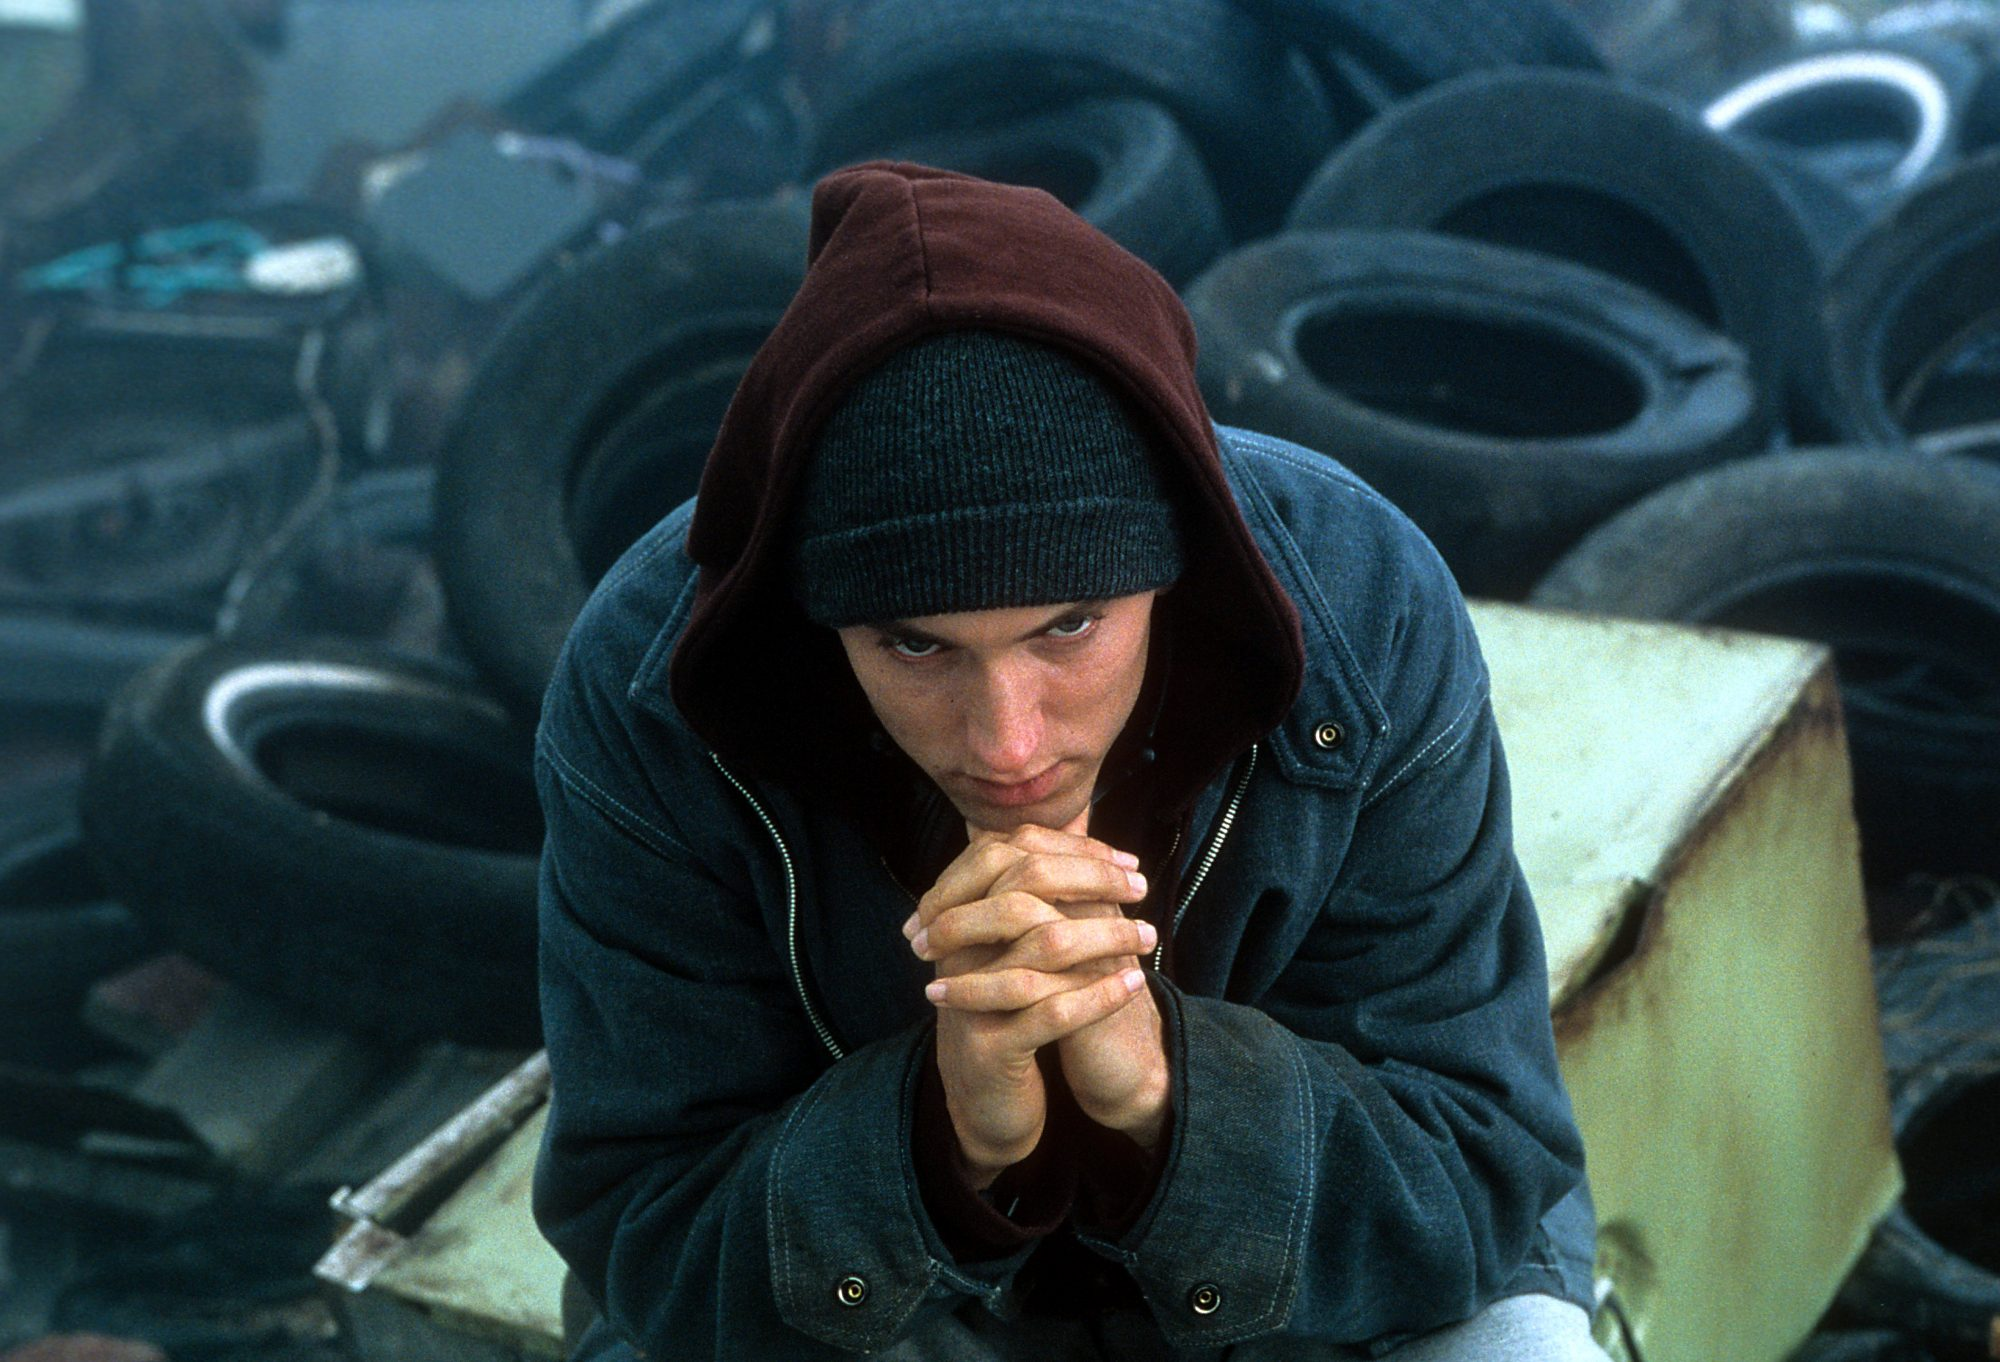 Netflix Rewrites The Plot Of 8 Mile To Be All About Mom